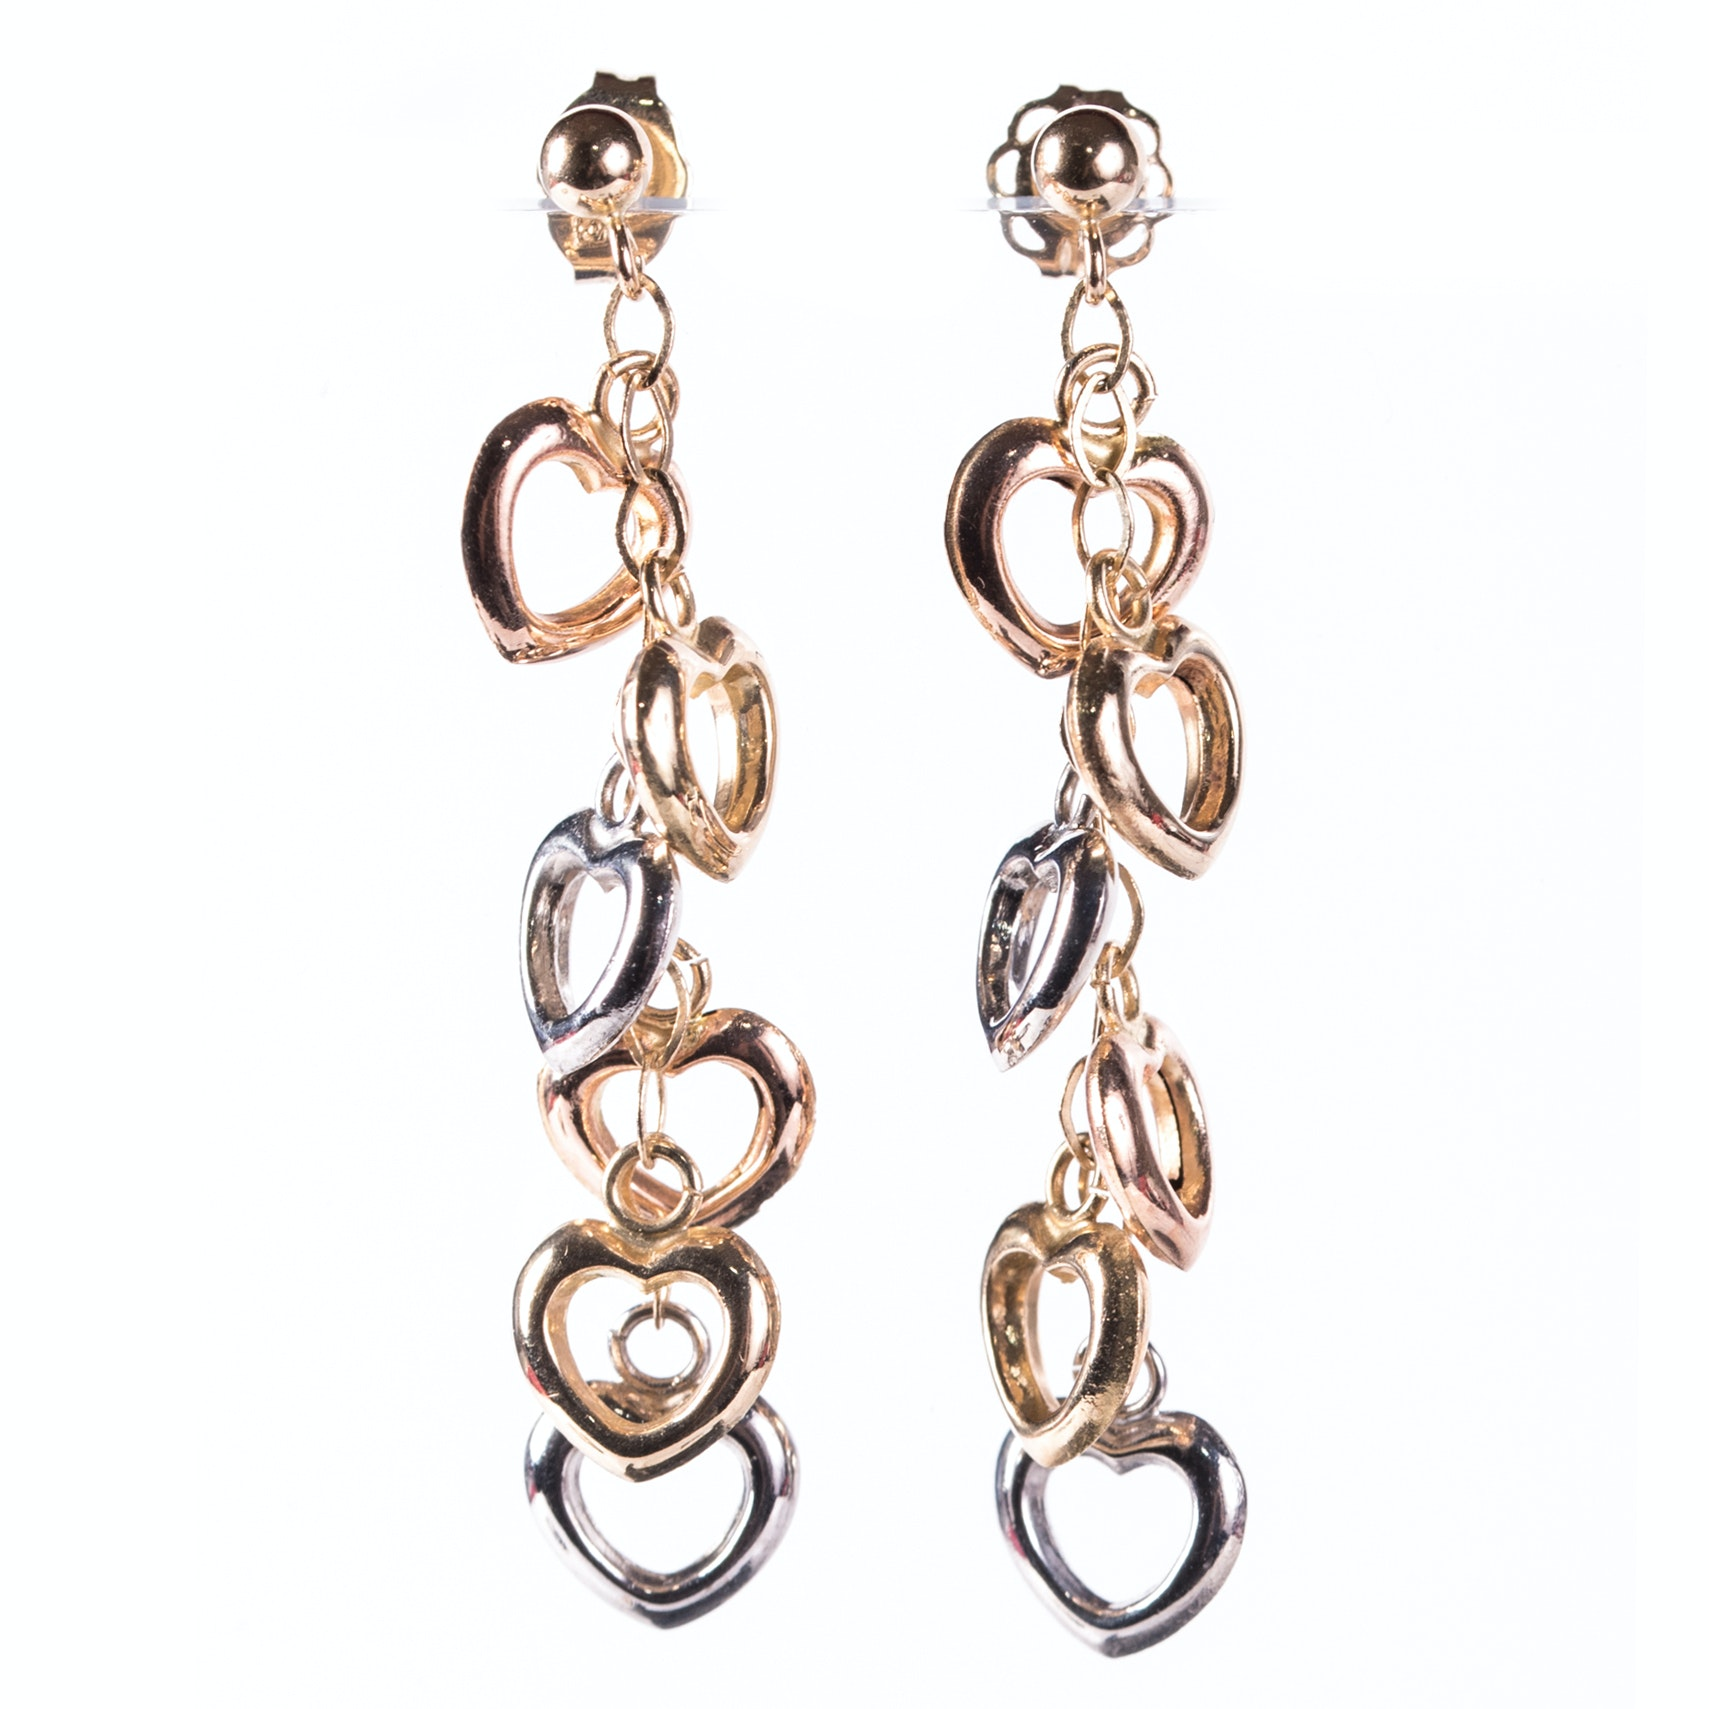 14K Yellow, Rose, and White Gold Heart Earrings